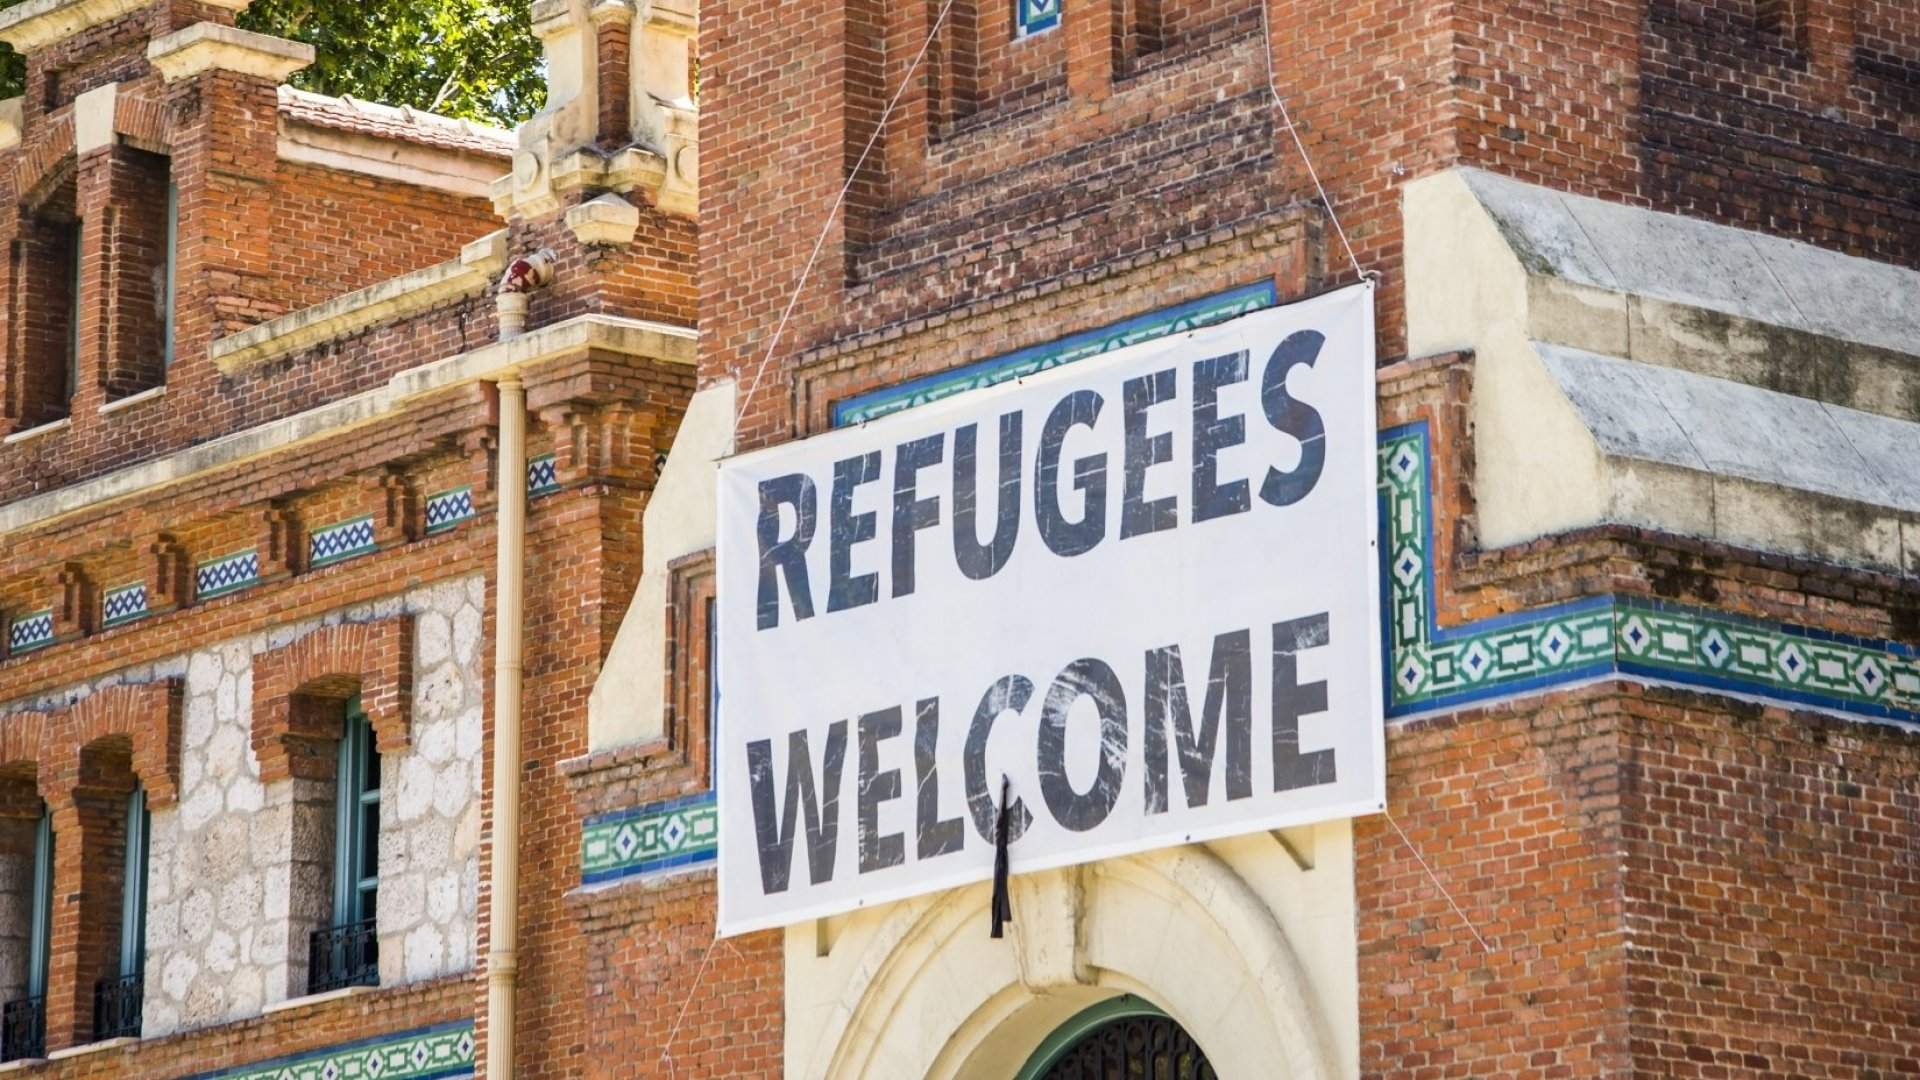 The Top 6 Companies Giving Back to Refugees